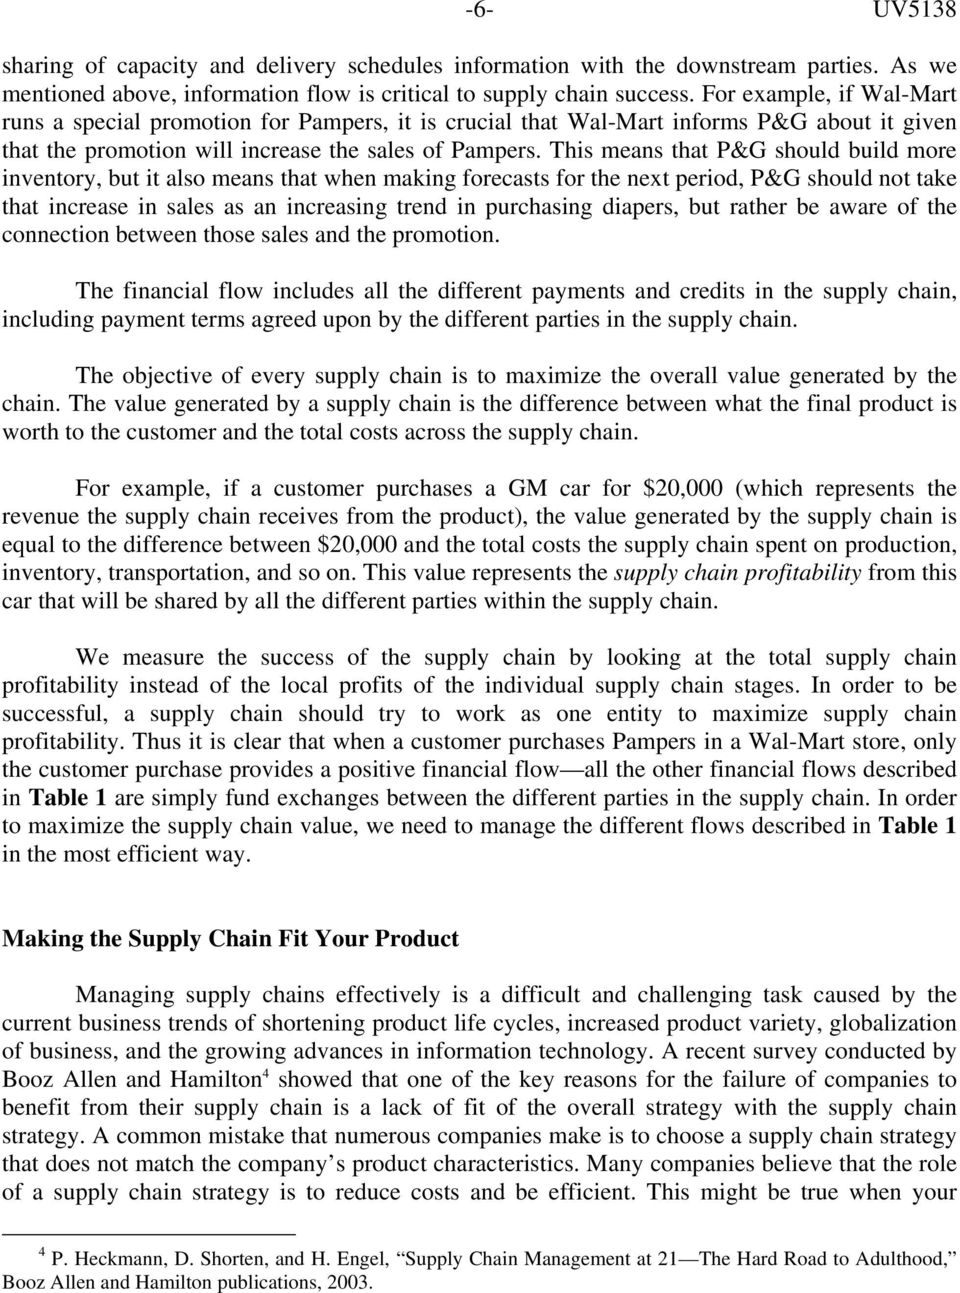 INTRODUCTION TO SUPPLY CHAIN MANAGEMENT - PDF